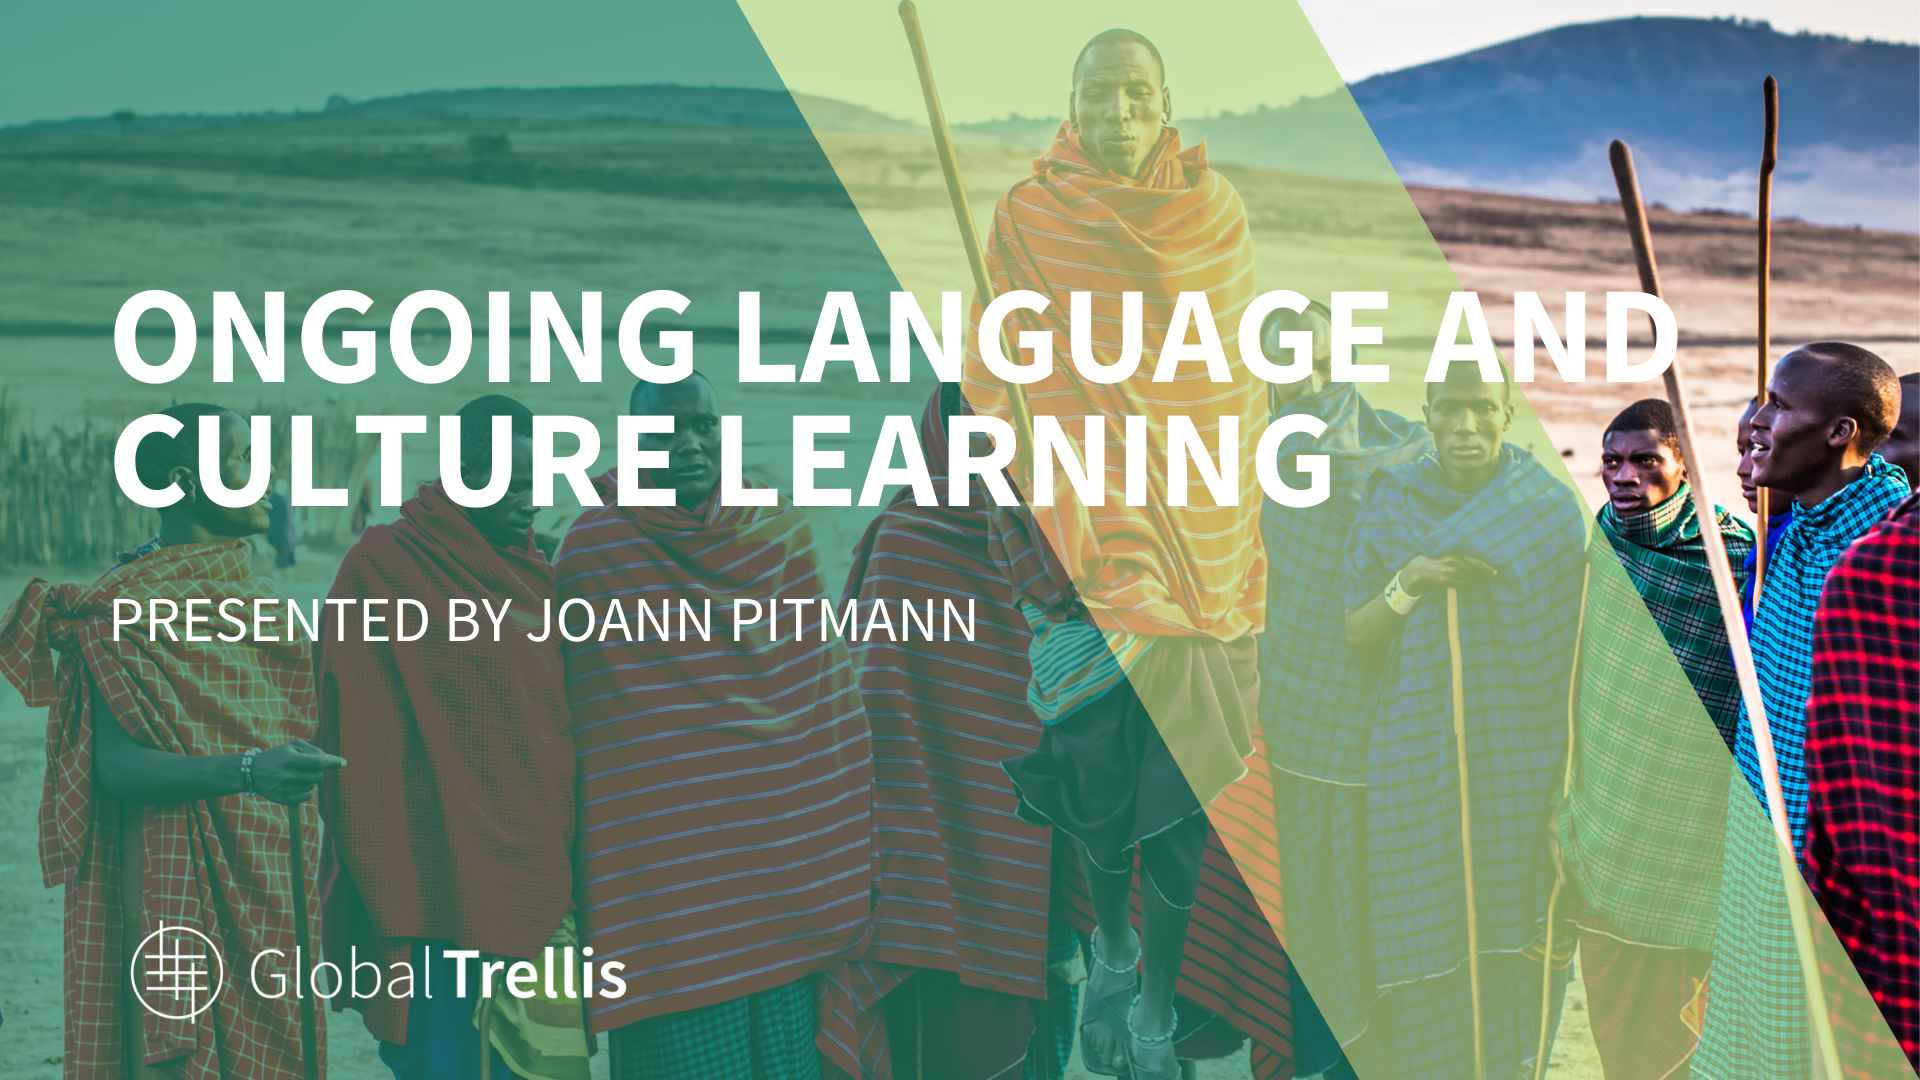 Ongoing Language and Culture Learning